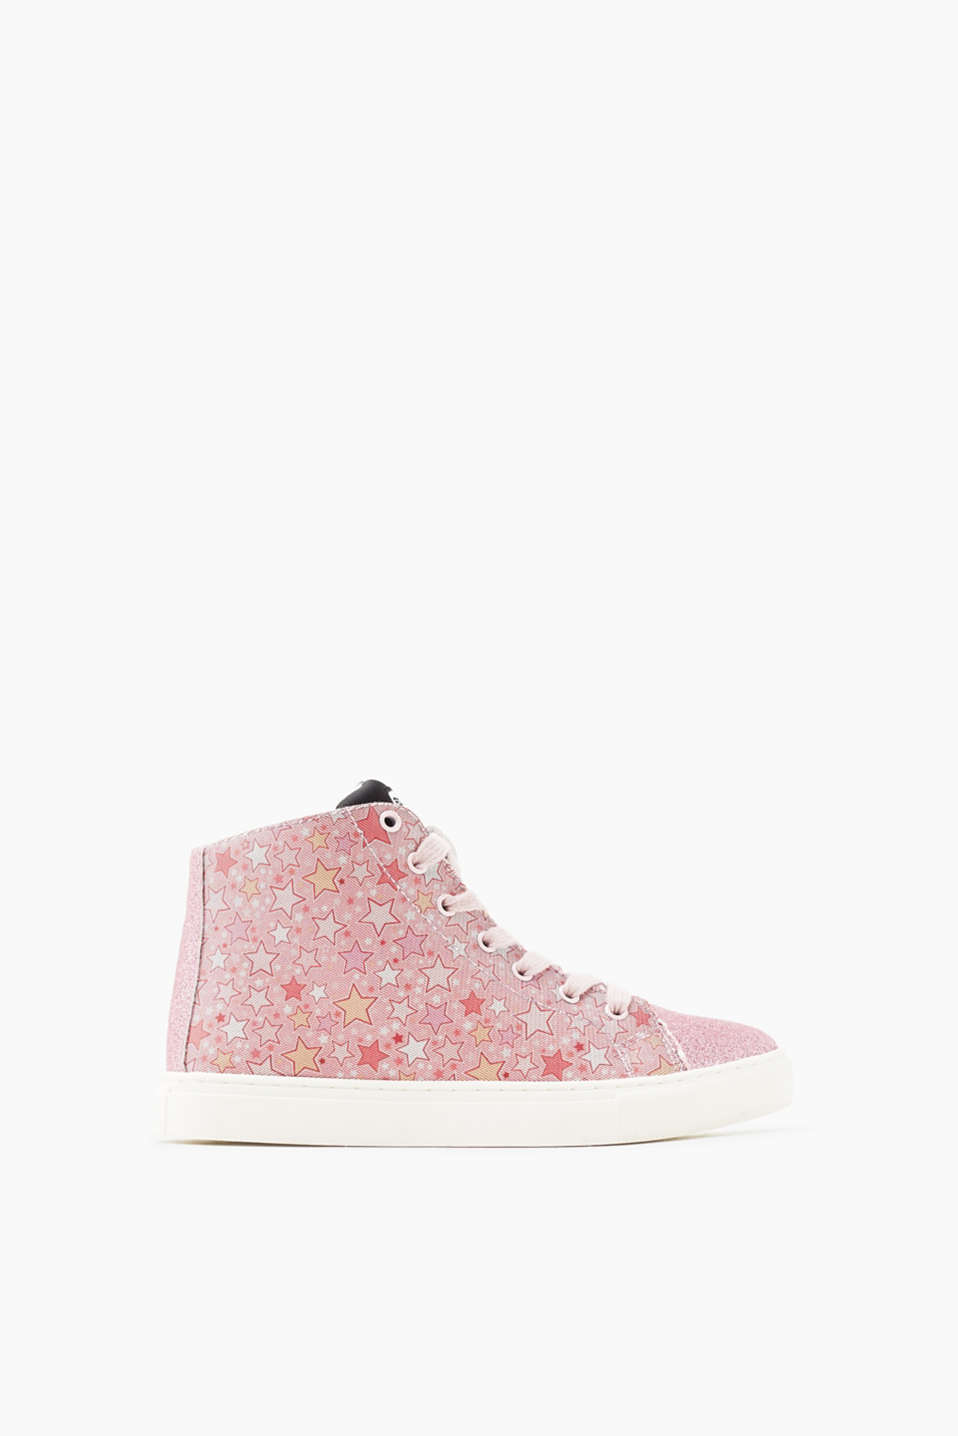 Mit praktischem Innen-Zipper: High Top-Sneaker im glitzernden Stern-Look